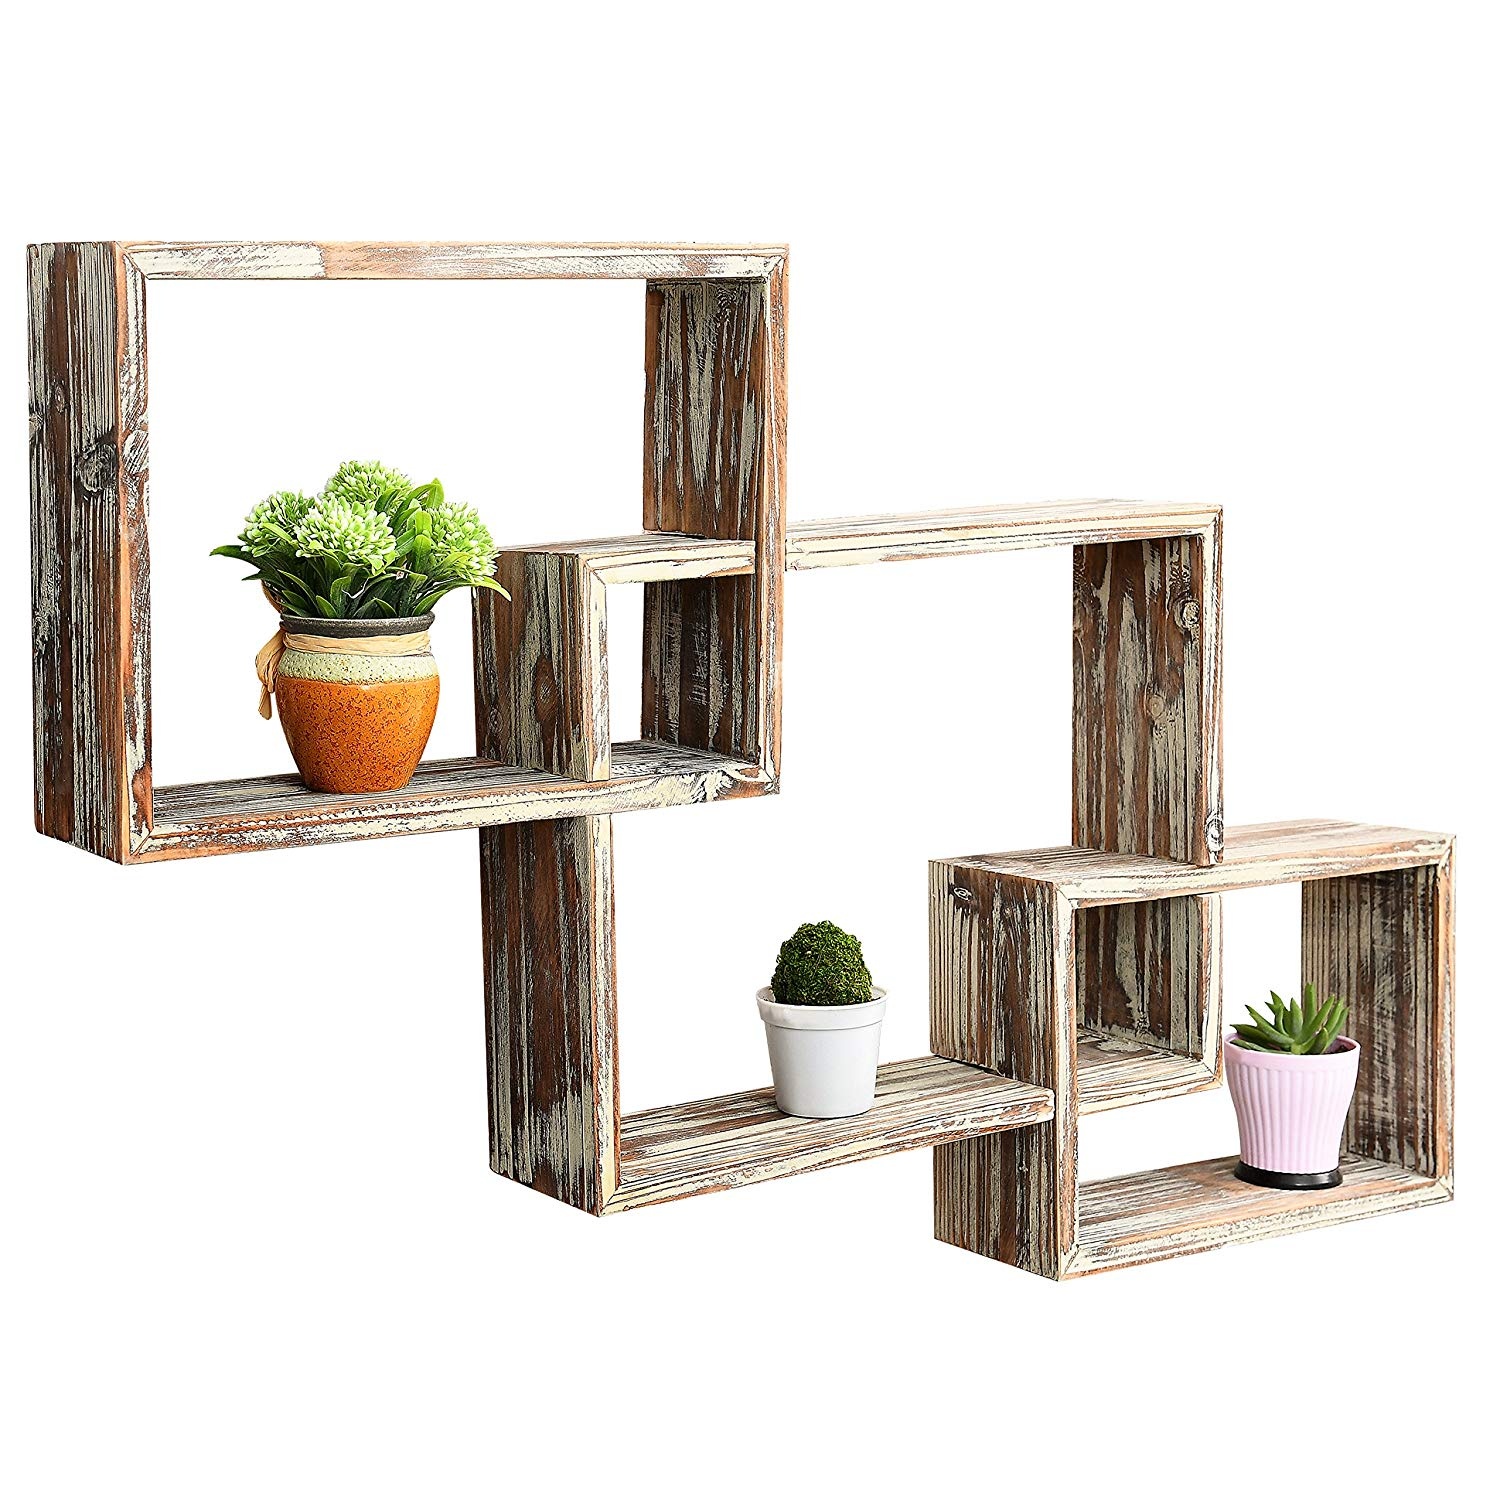 mygift wall mounted country rustic brown interlocking floating wood display shelf shadow box shelves set home kitchen reclaimed pub table small computer desk ikea bathroom cabinet